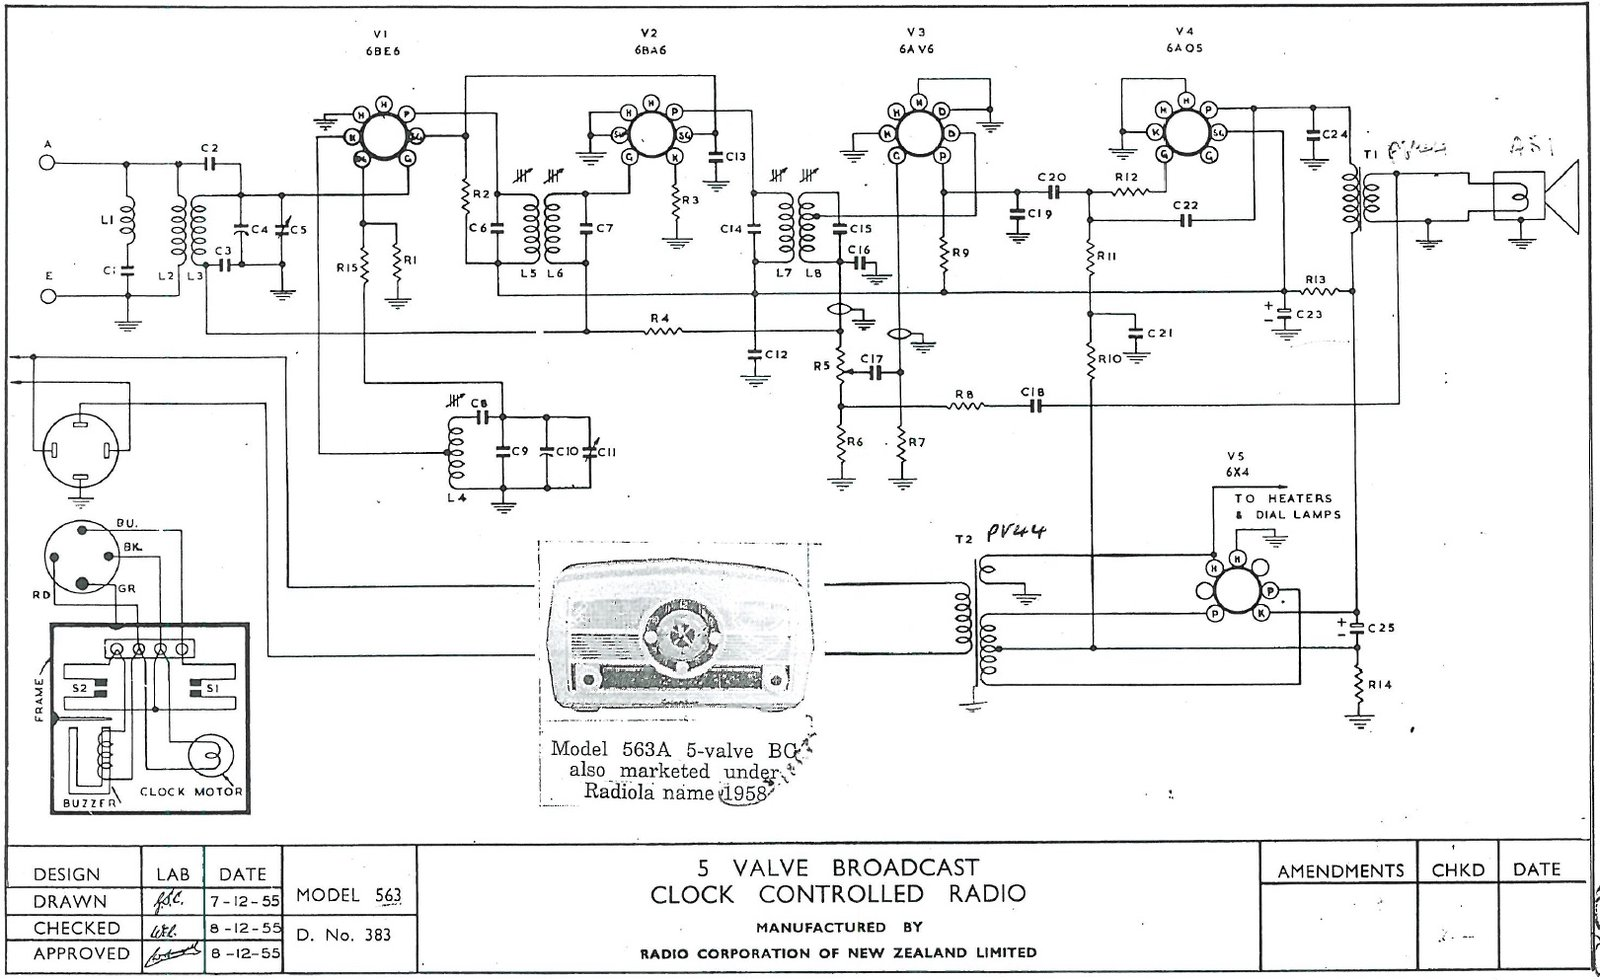 1955 Columbus model 563 Schematic